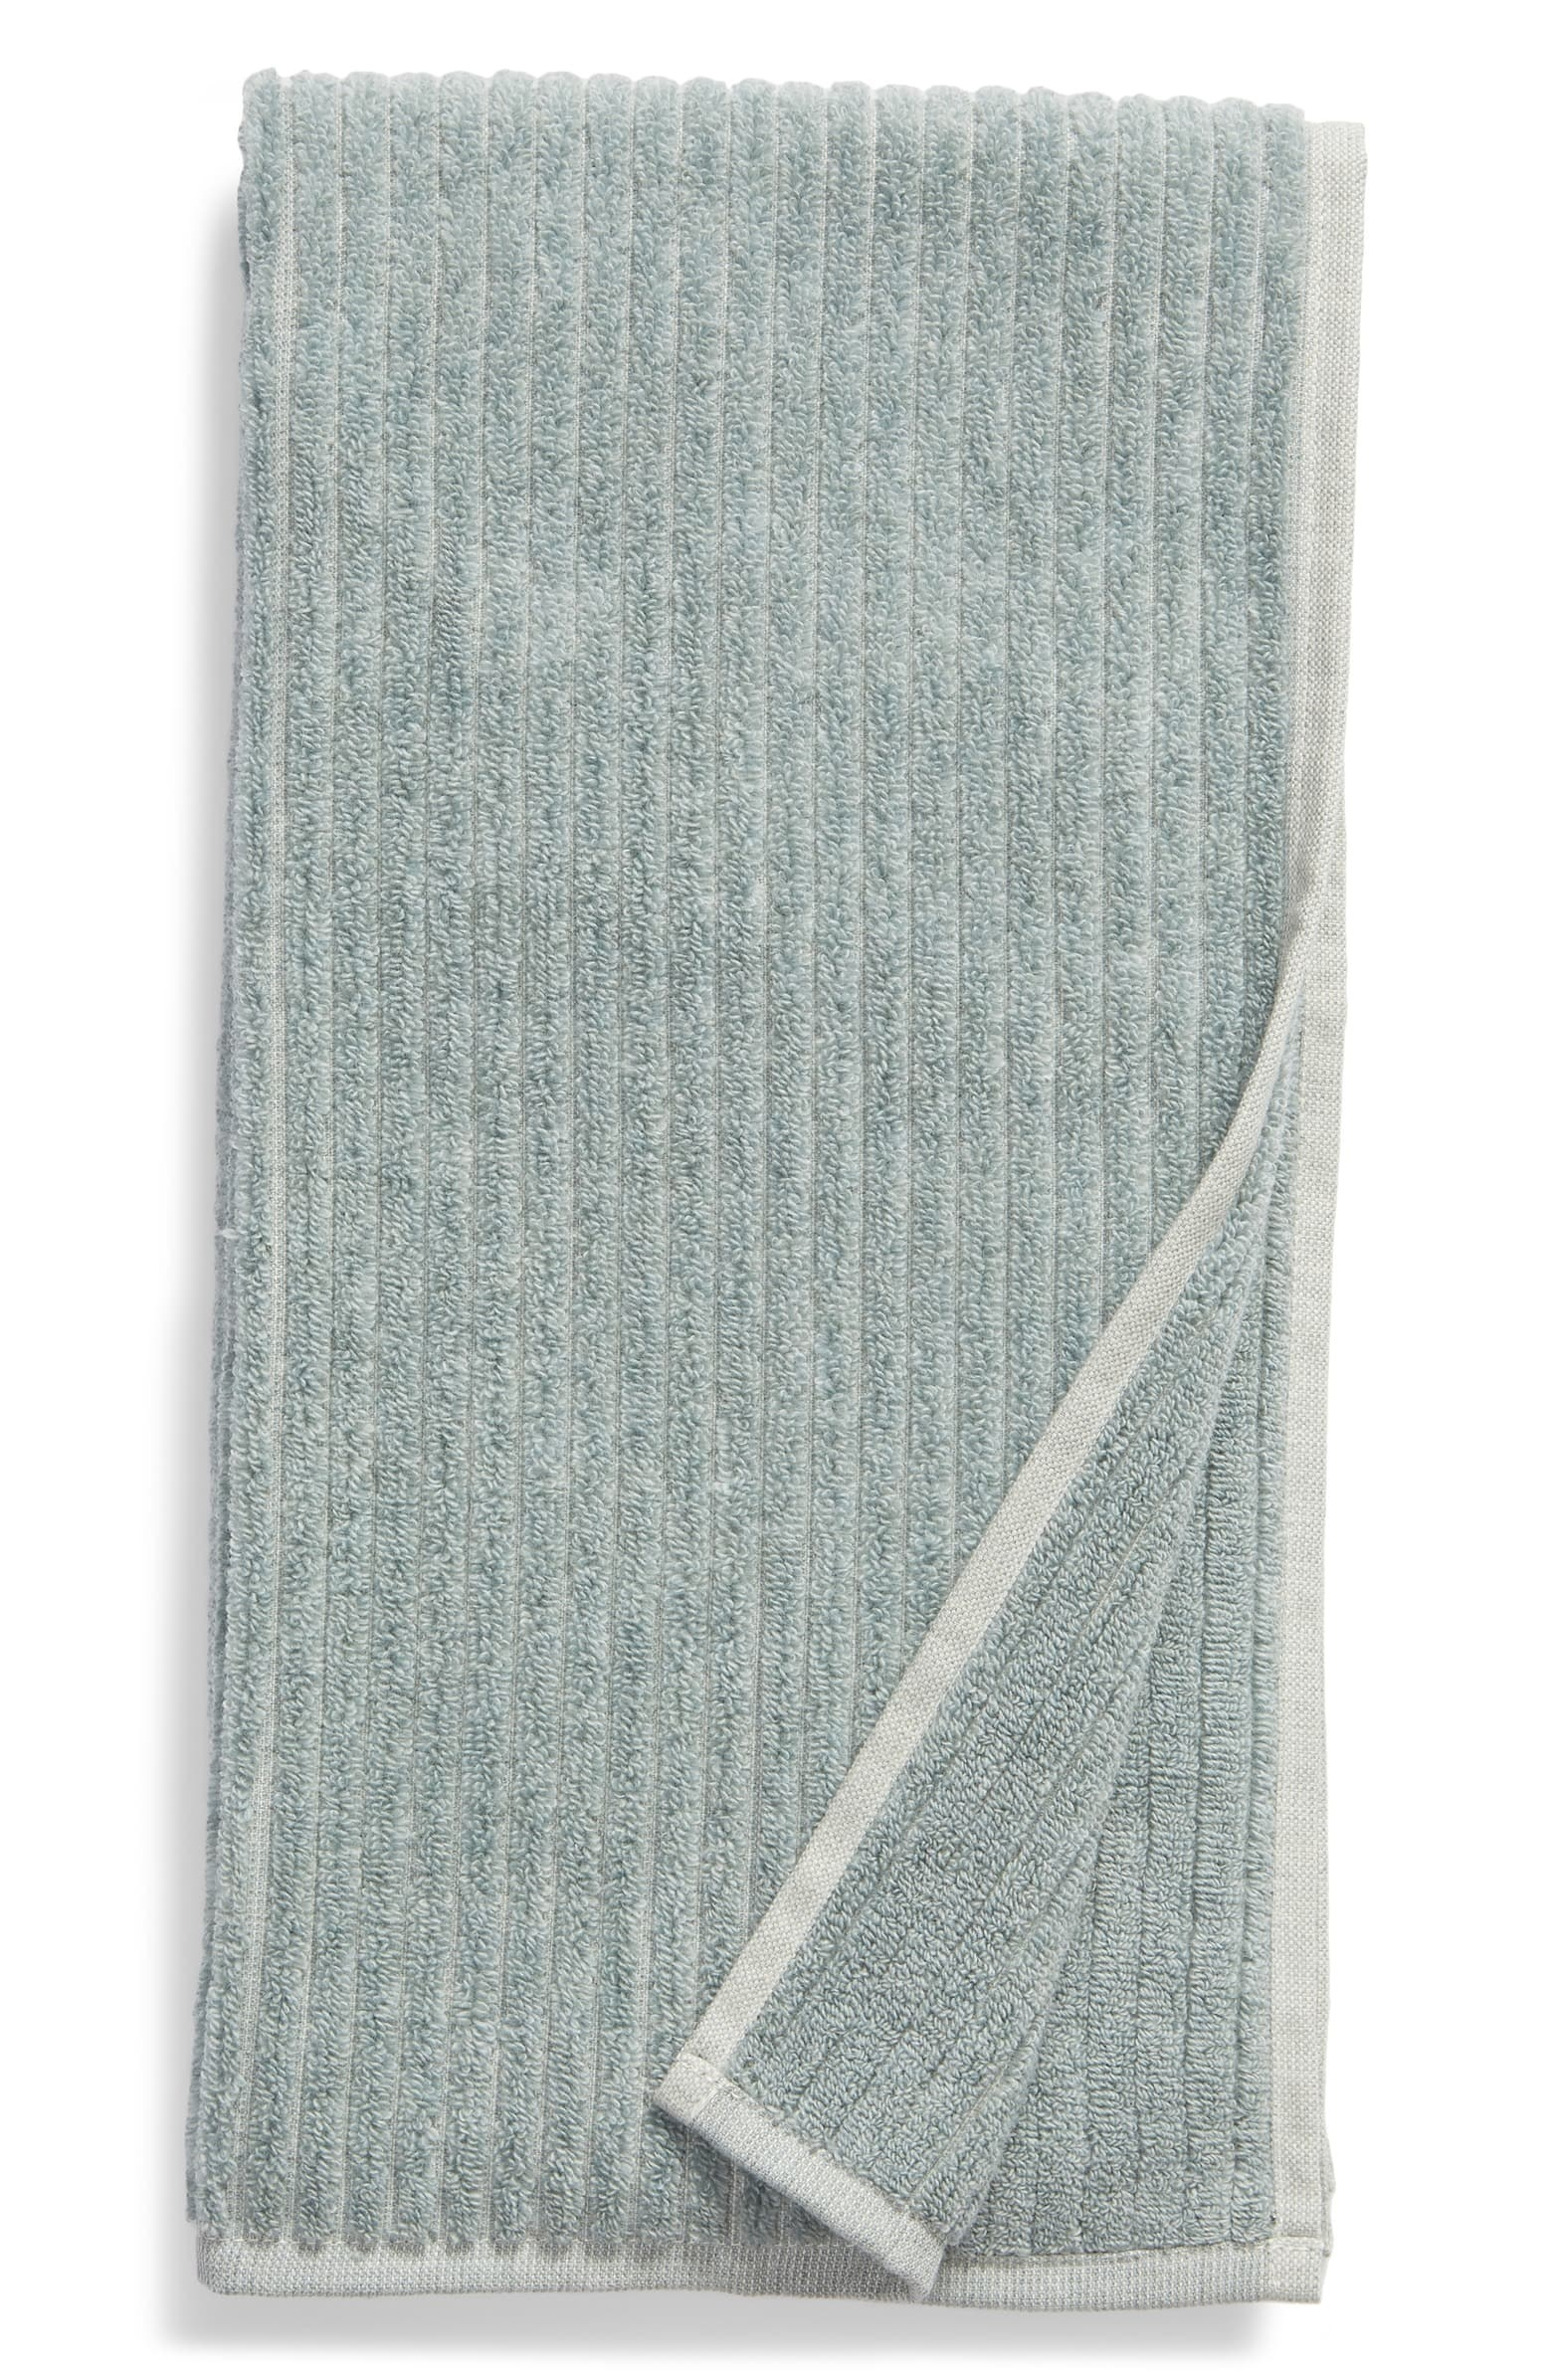 The ribbed hand towel with vertical lines in teal